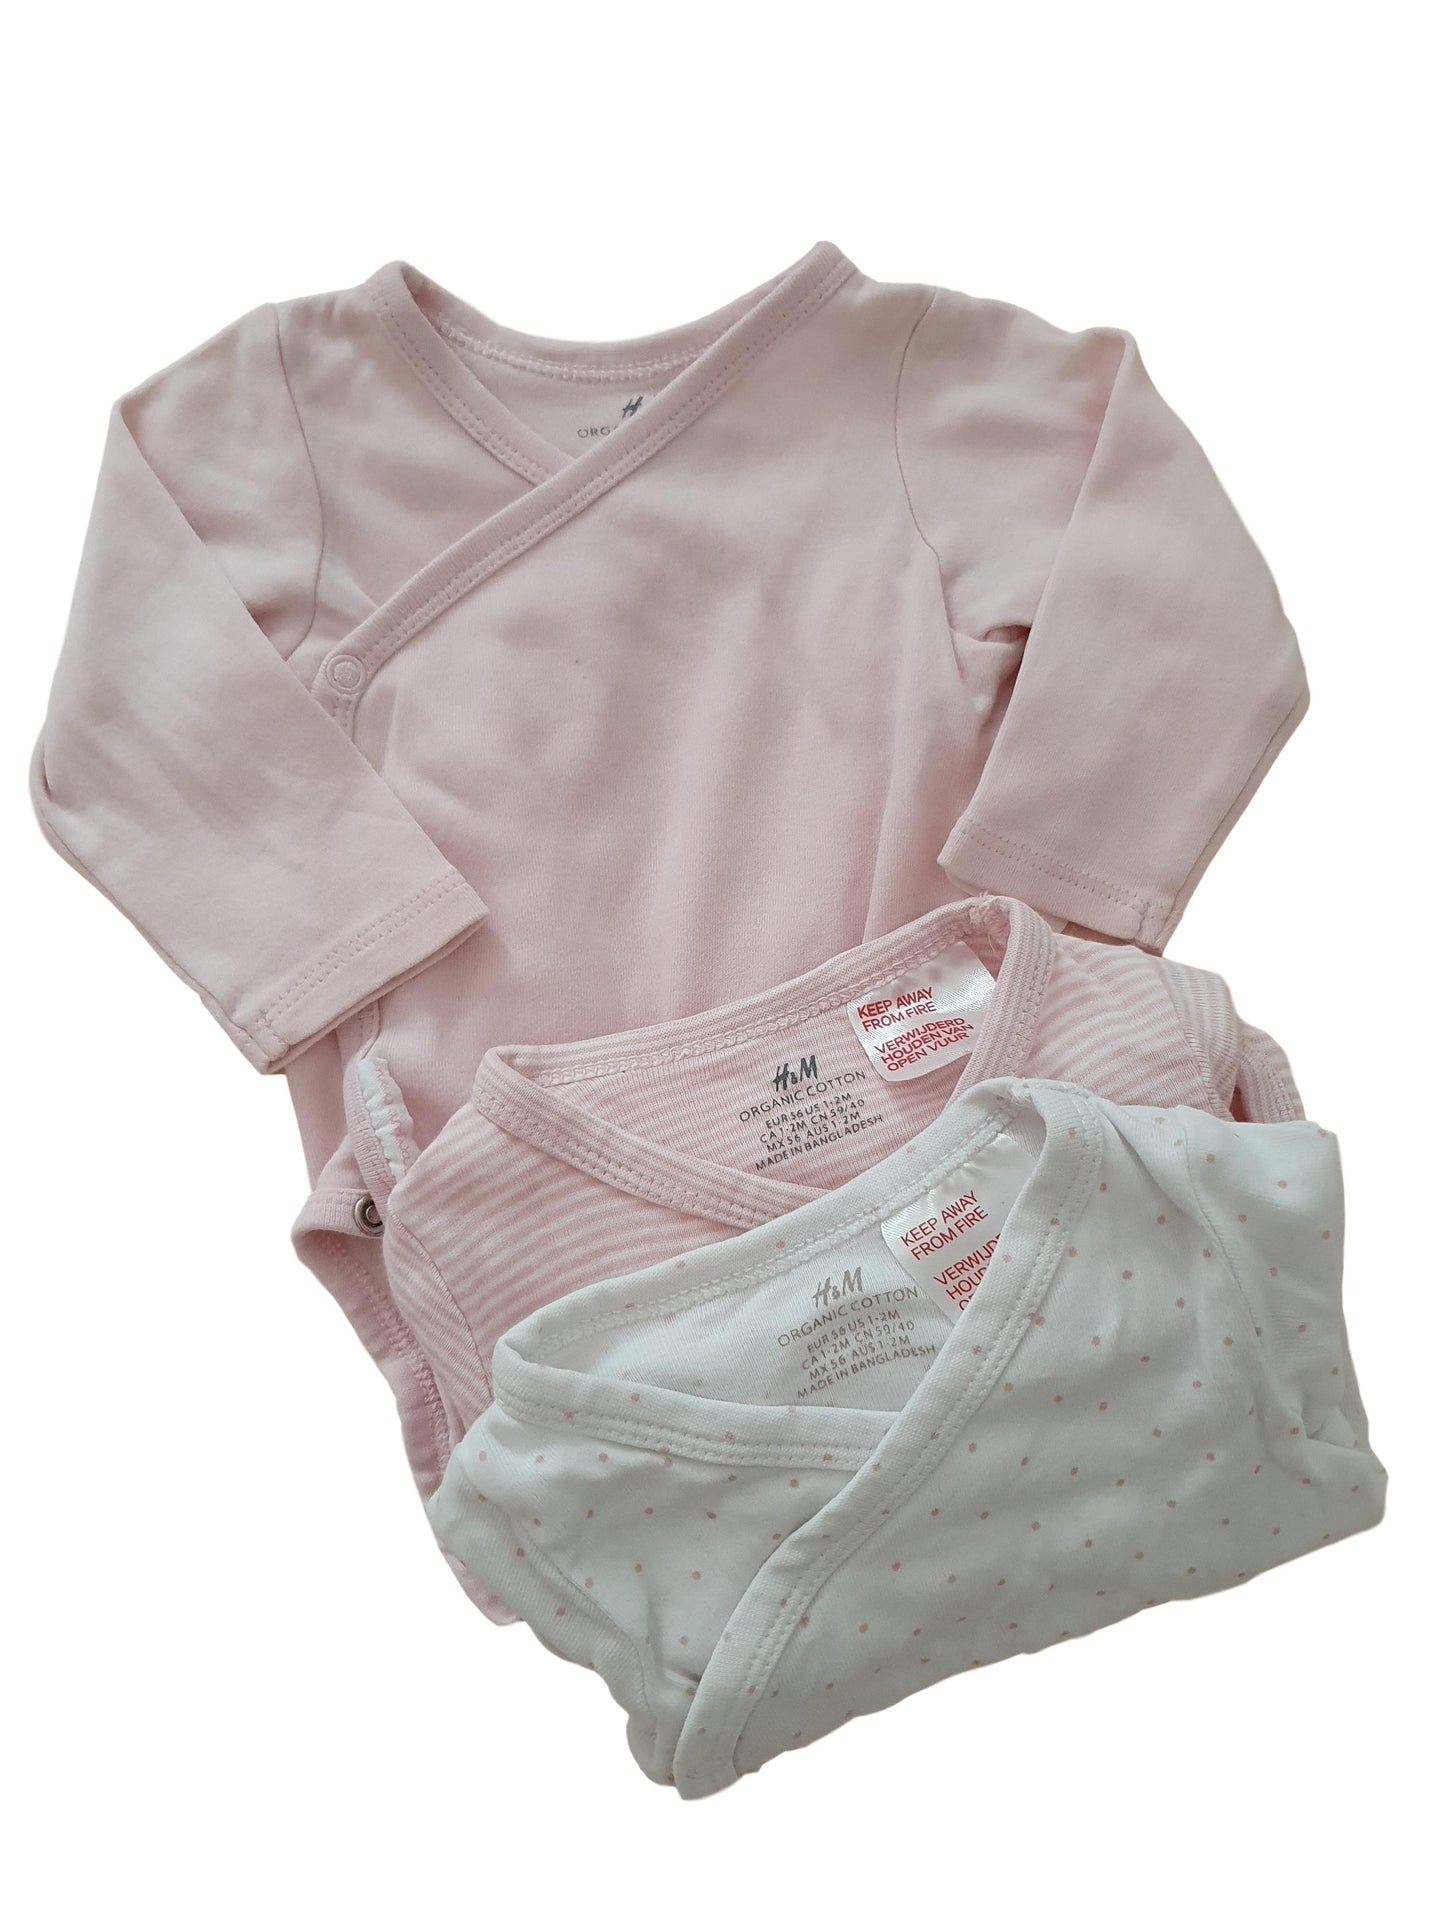 HM girl bodysuit set 1-2m